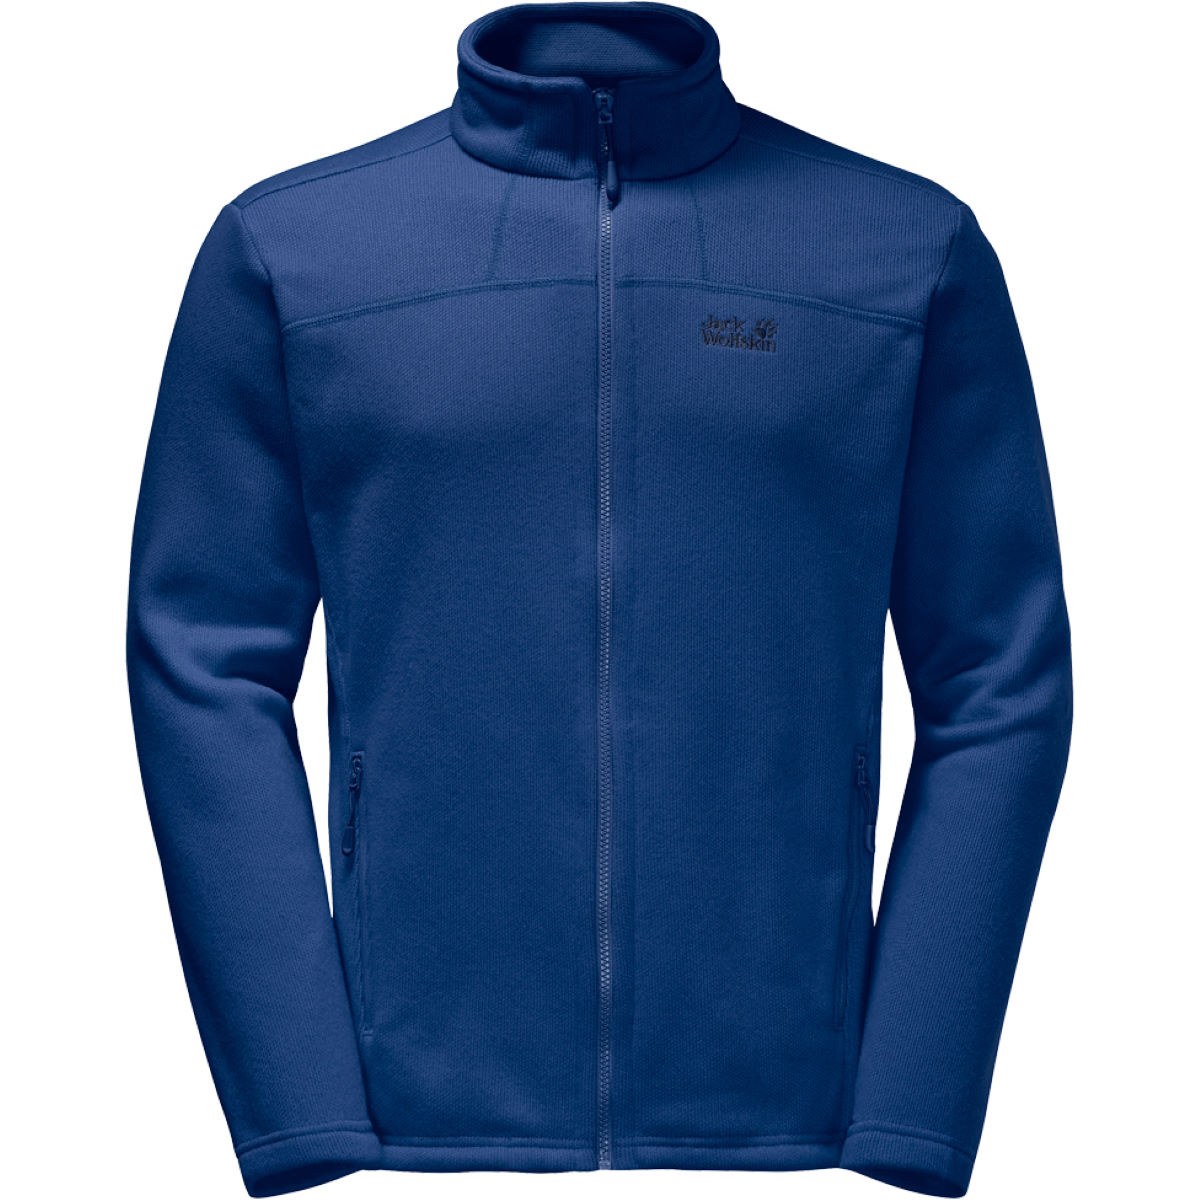 Veste Jack Wolfskin Castle Rock - Medium Bleu Marine